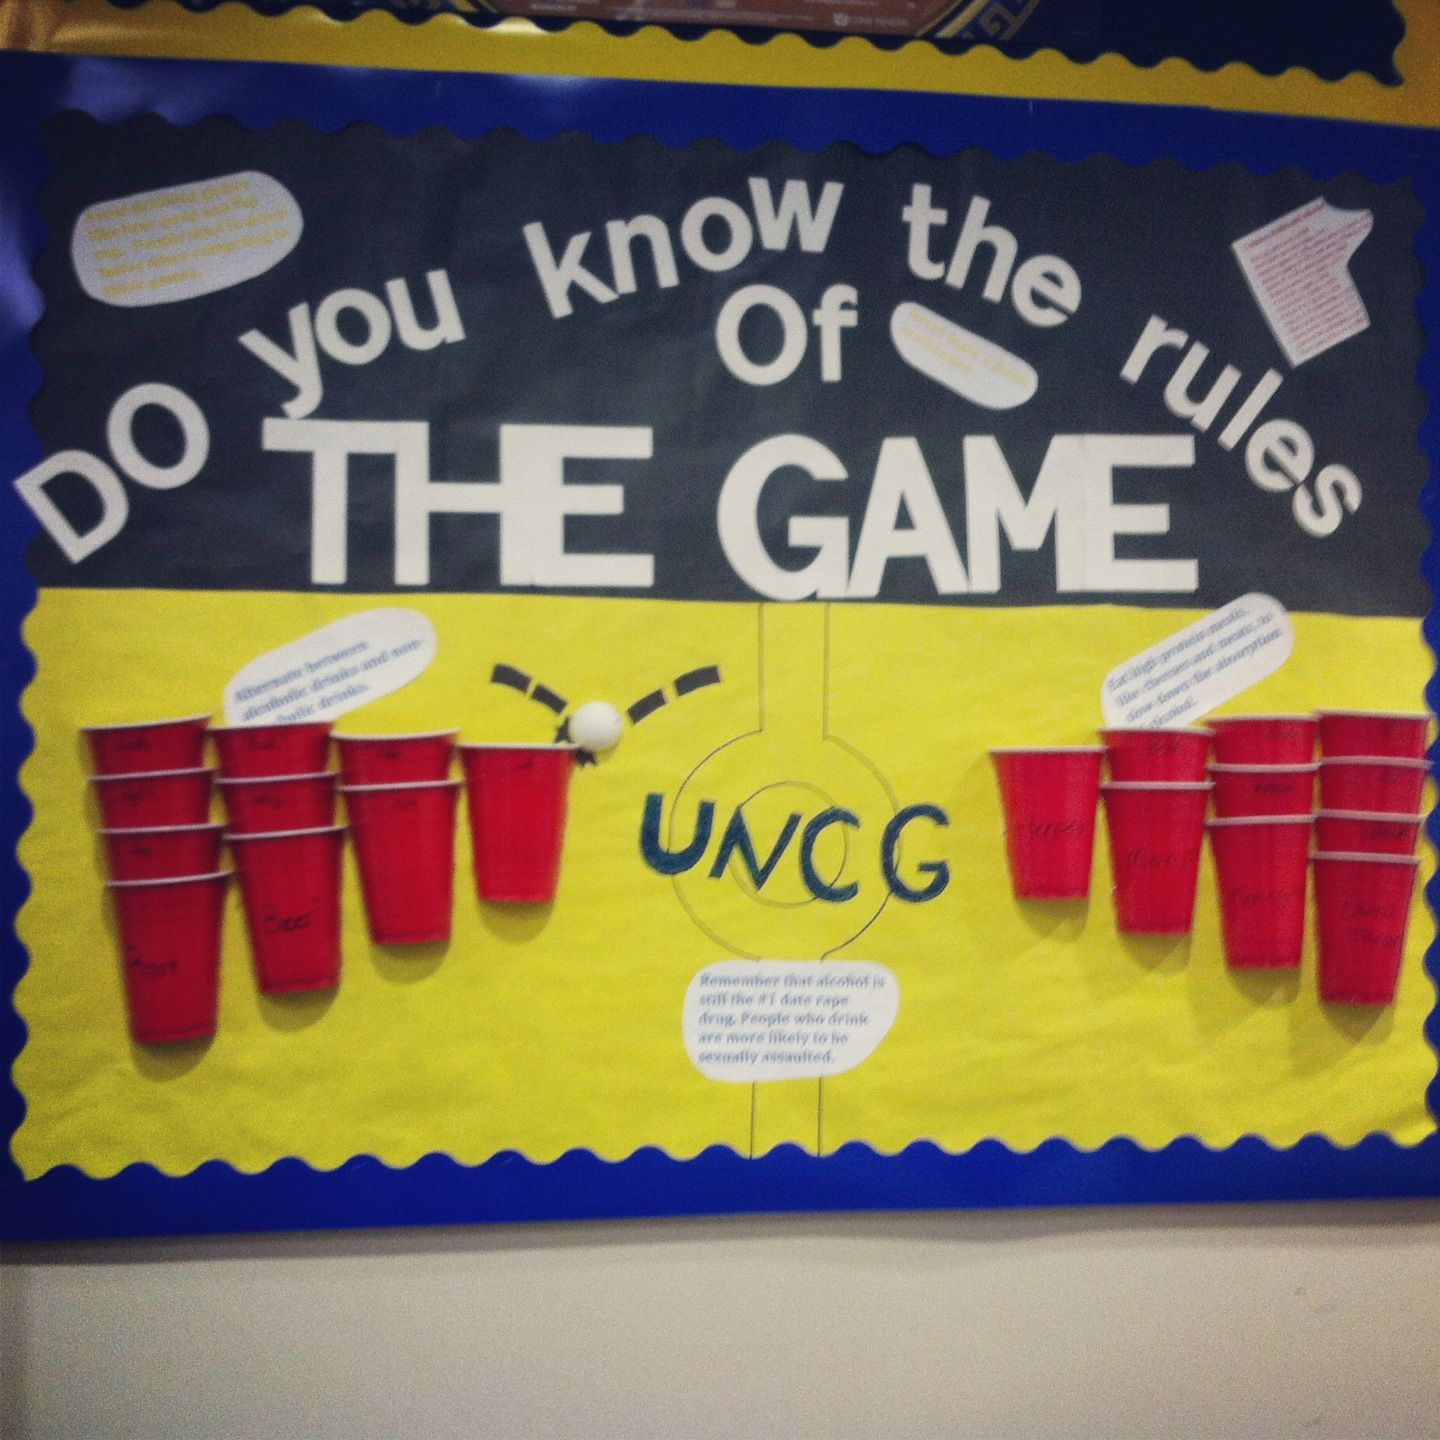 3- Beer Pong With Alcohol Education. #bulletinboard #